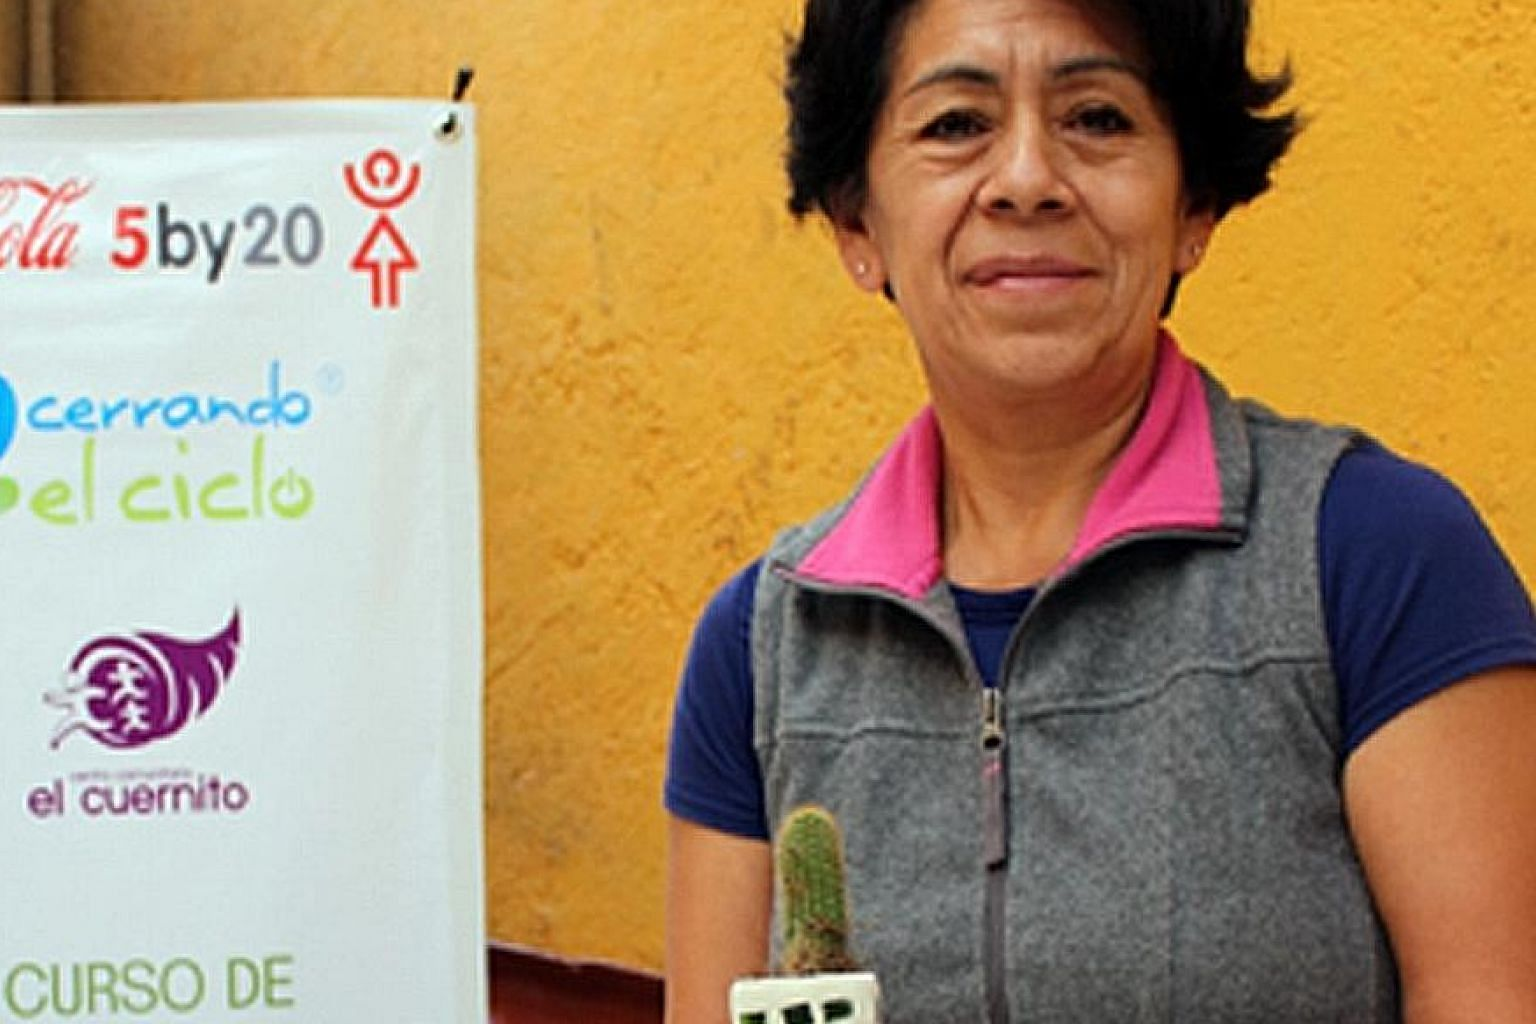 Cerrando el Ciclo (Closing the Cycle), a civil association set up in Mexico, has recycled tonnes of glass from bottles into necklaces, earrings, cufflinks and more.